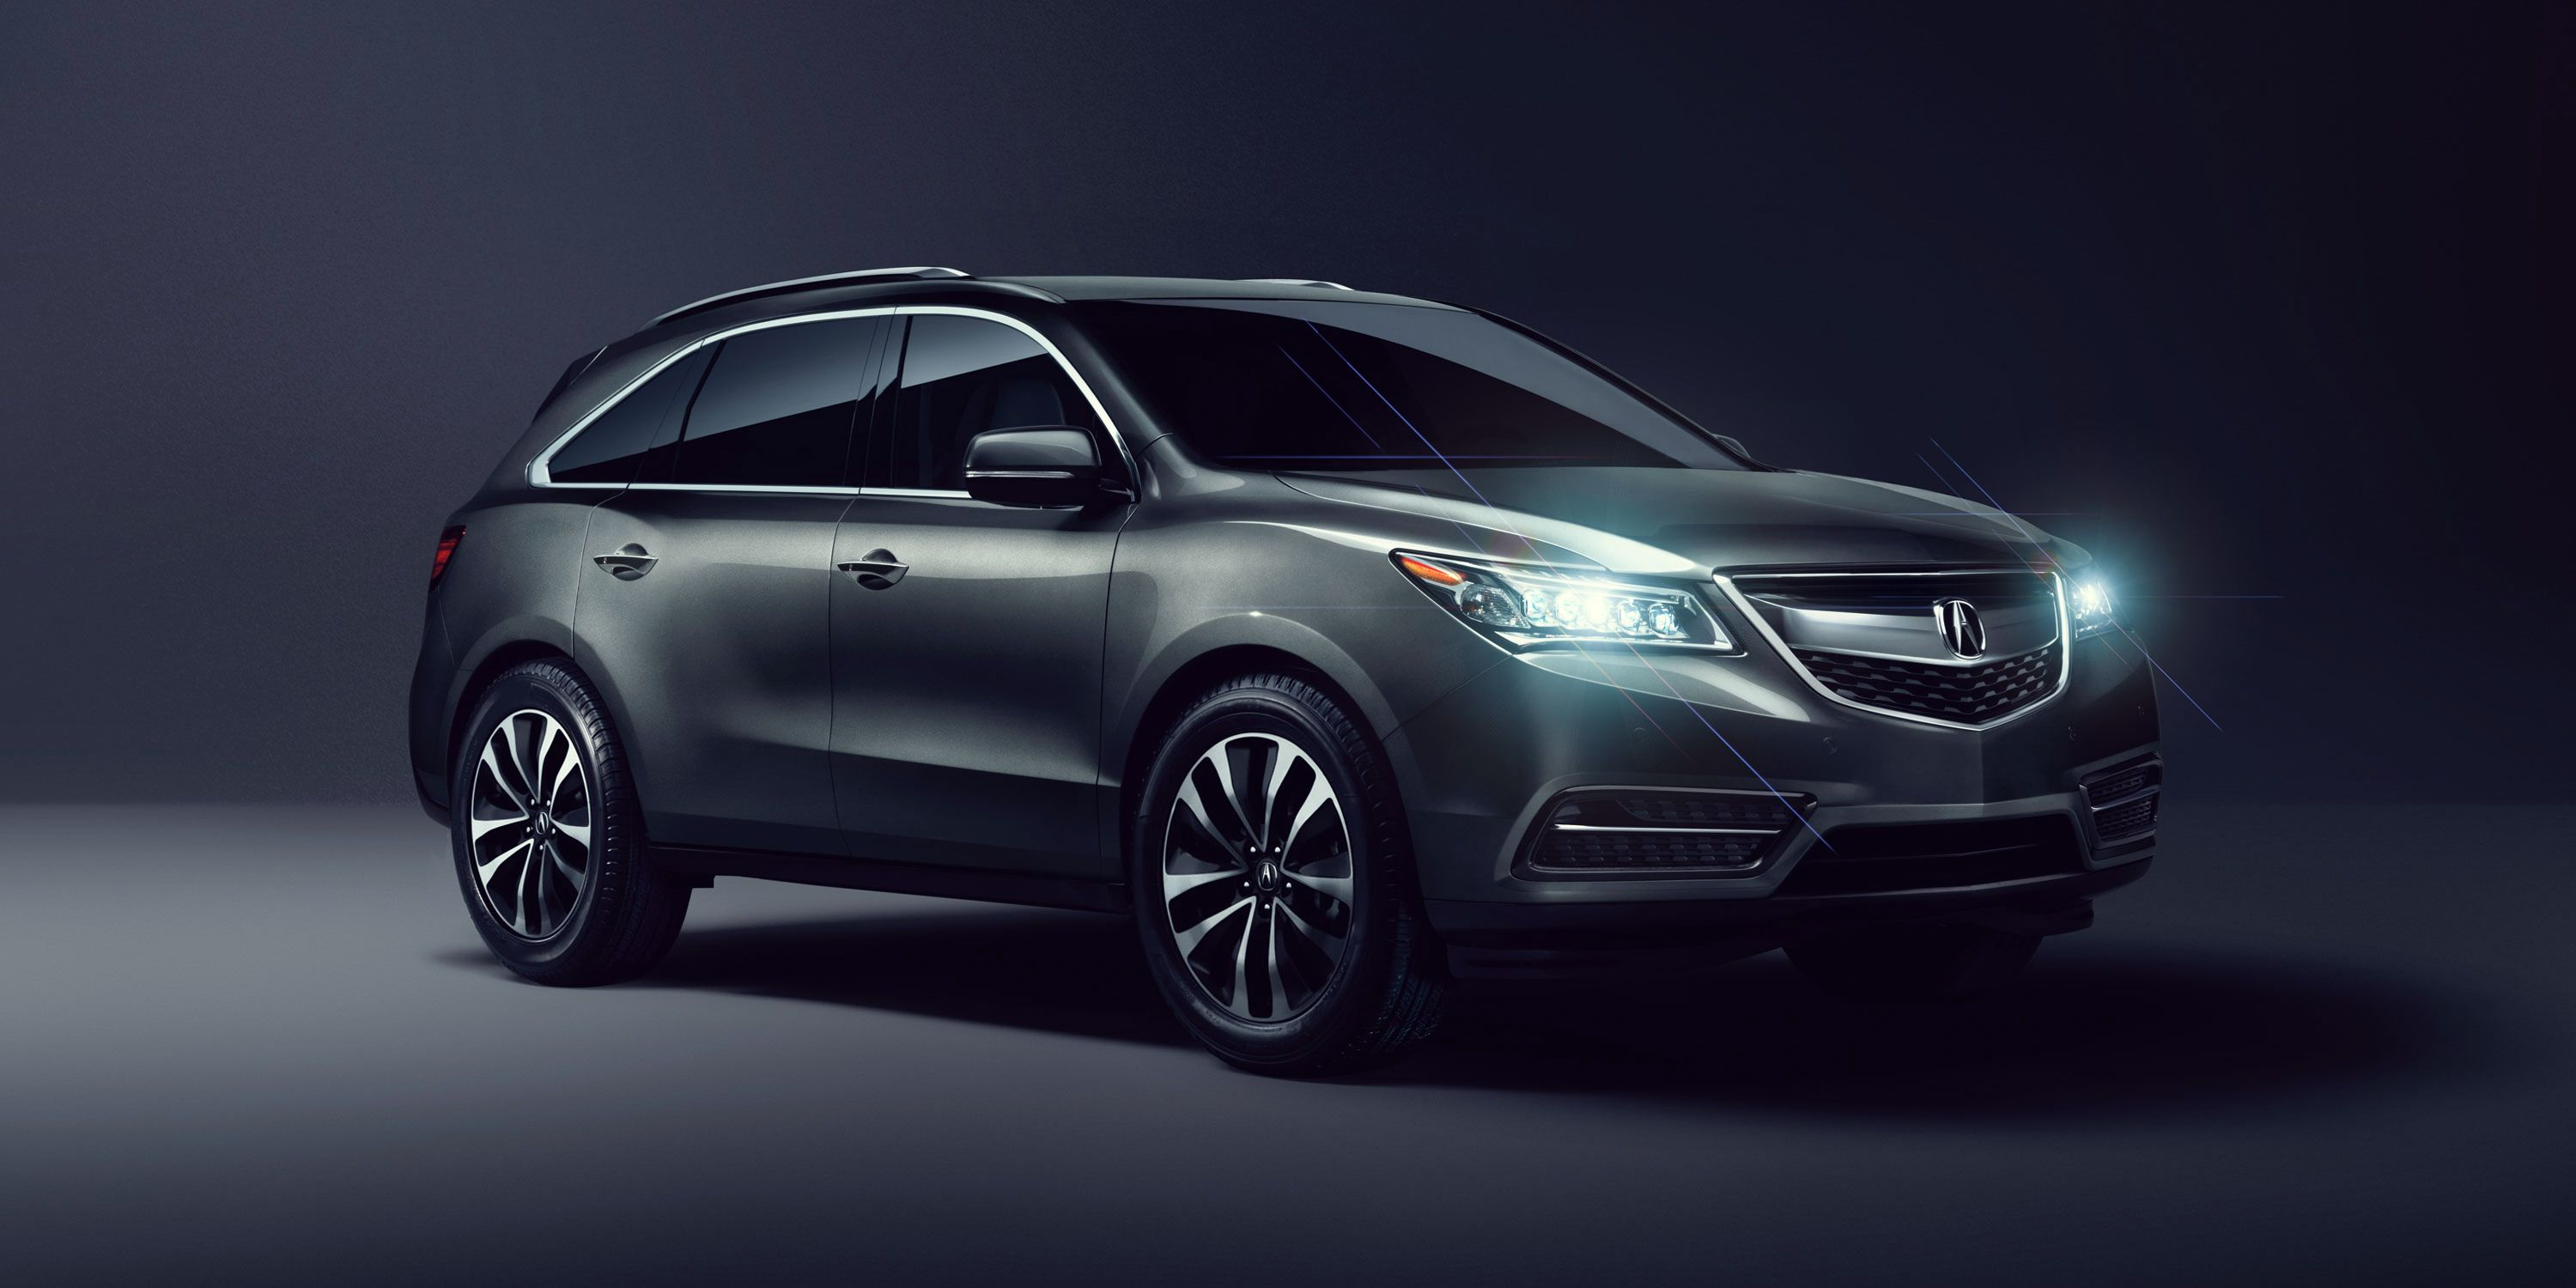 acura awd sh later sport news due from priced mdx cost hybrid